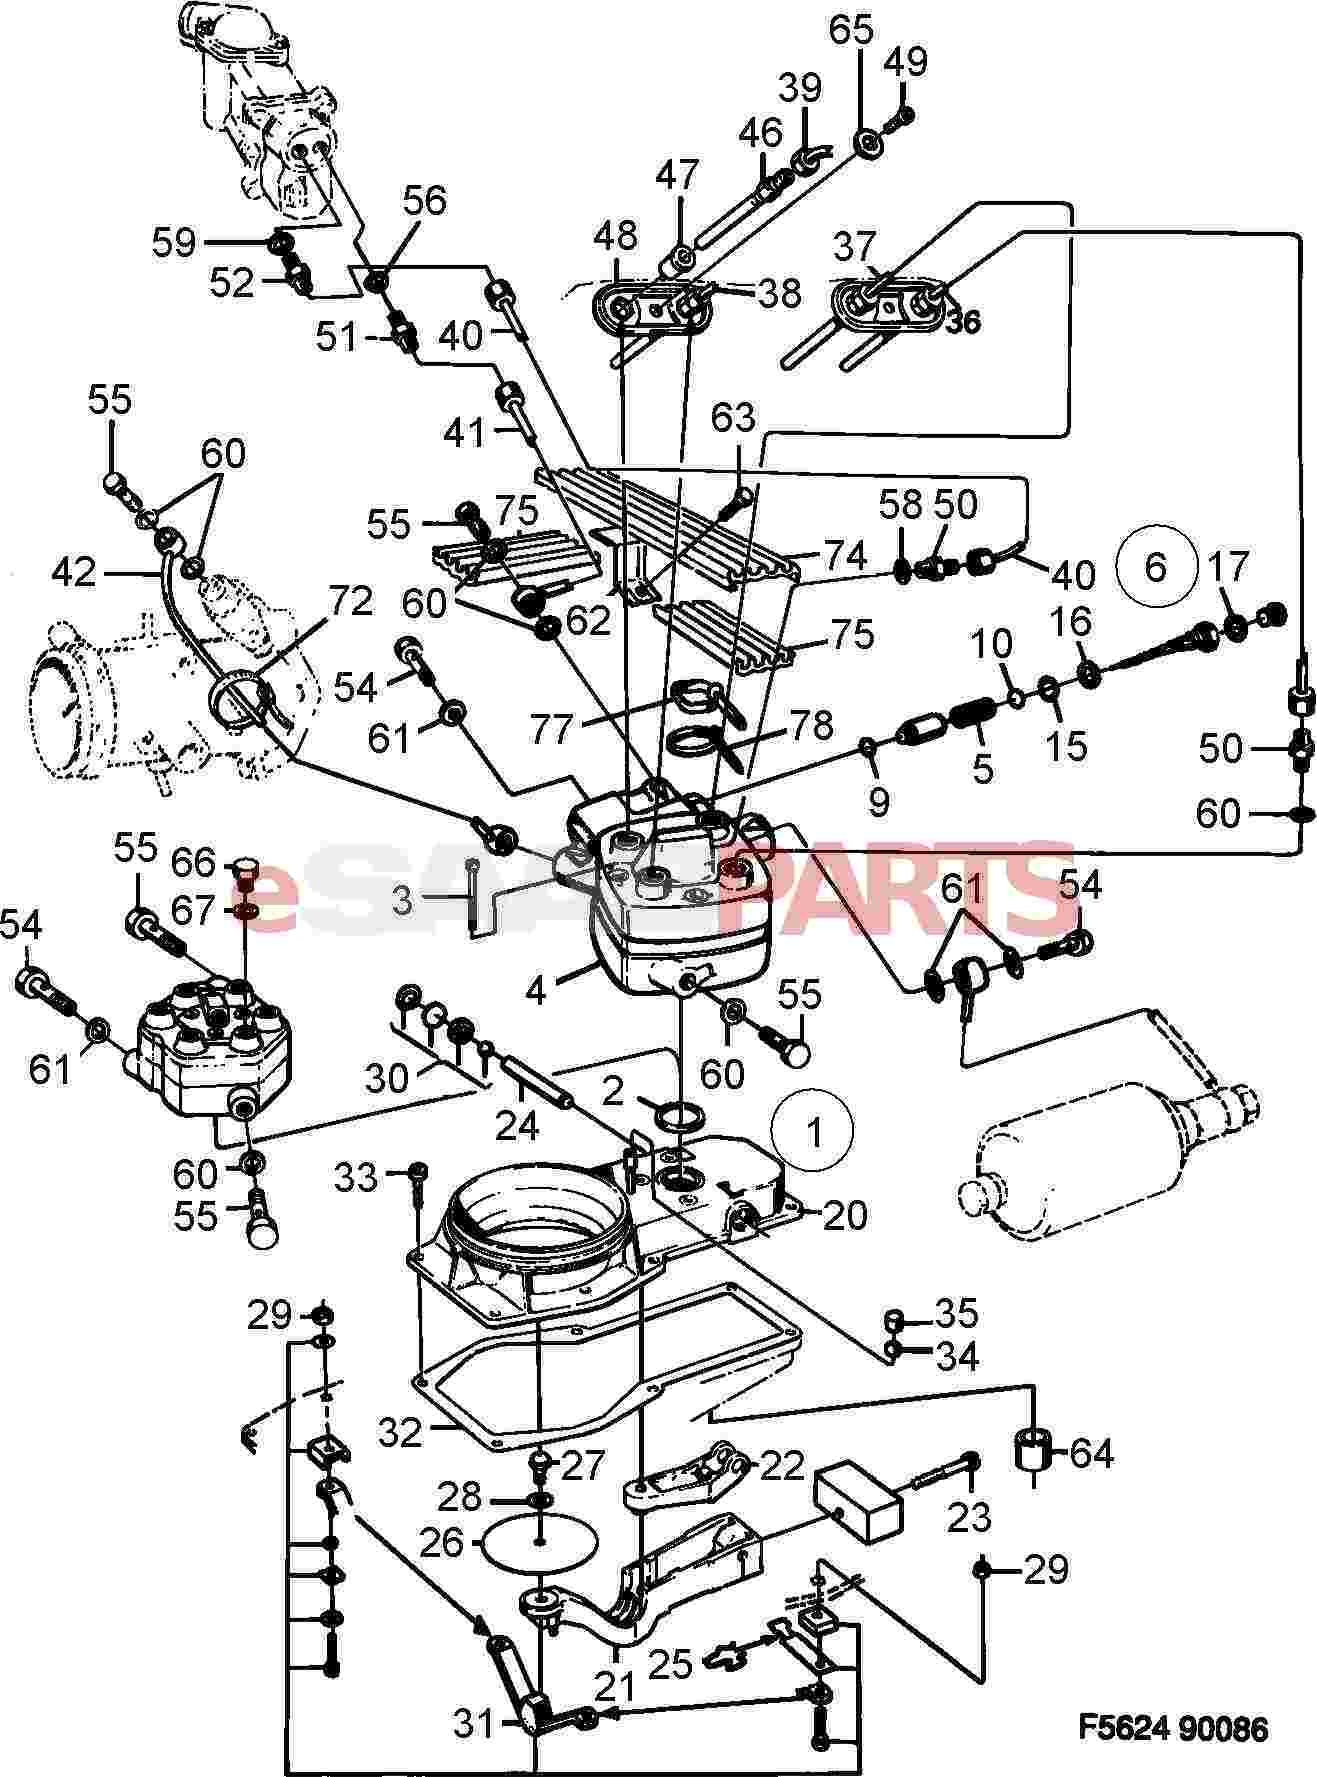 4443883 saab seal genuine saab parts from esaabparts com rh esaabparts com Fuel Injector Diagram saab 9-3 fuel system diagram